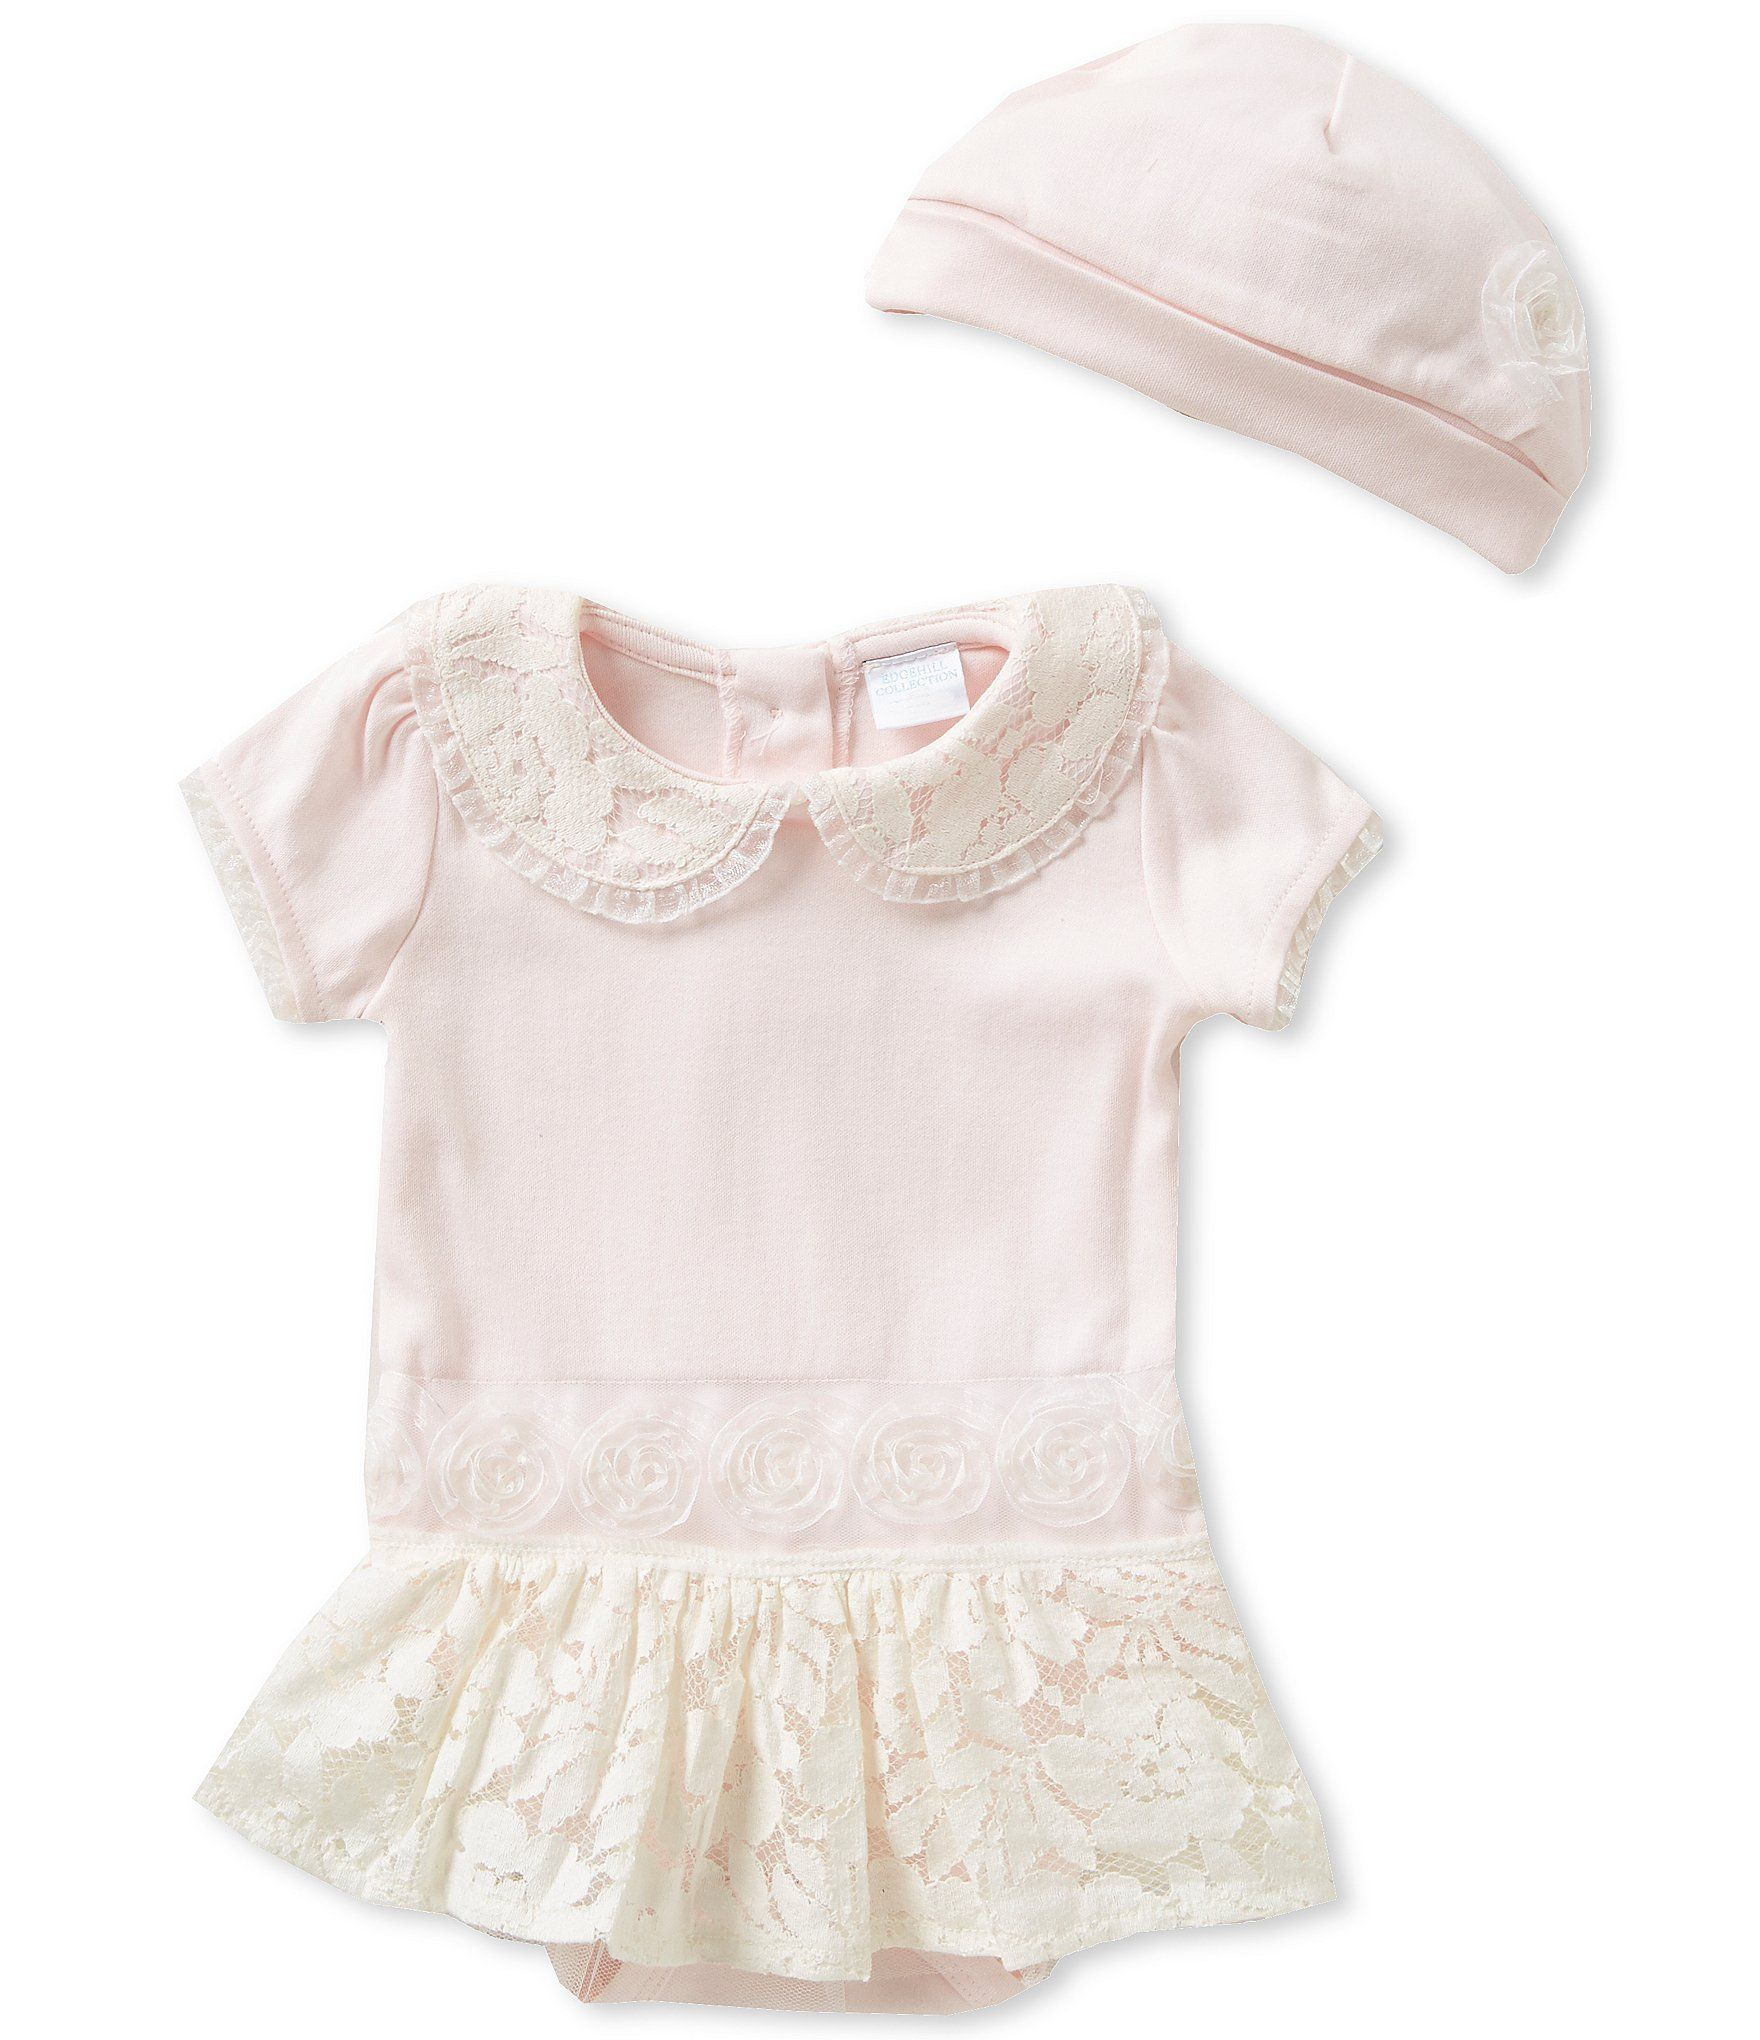 Edgehill Collection Baby Girls Newborn 6 Months Tutu Lace Trim